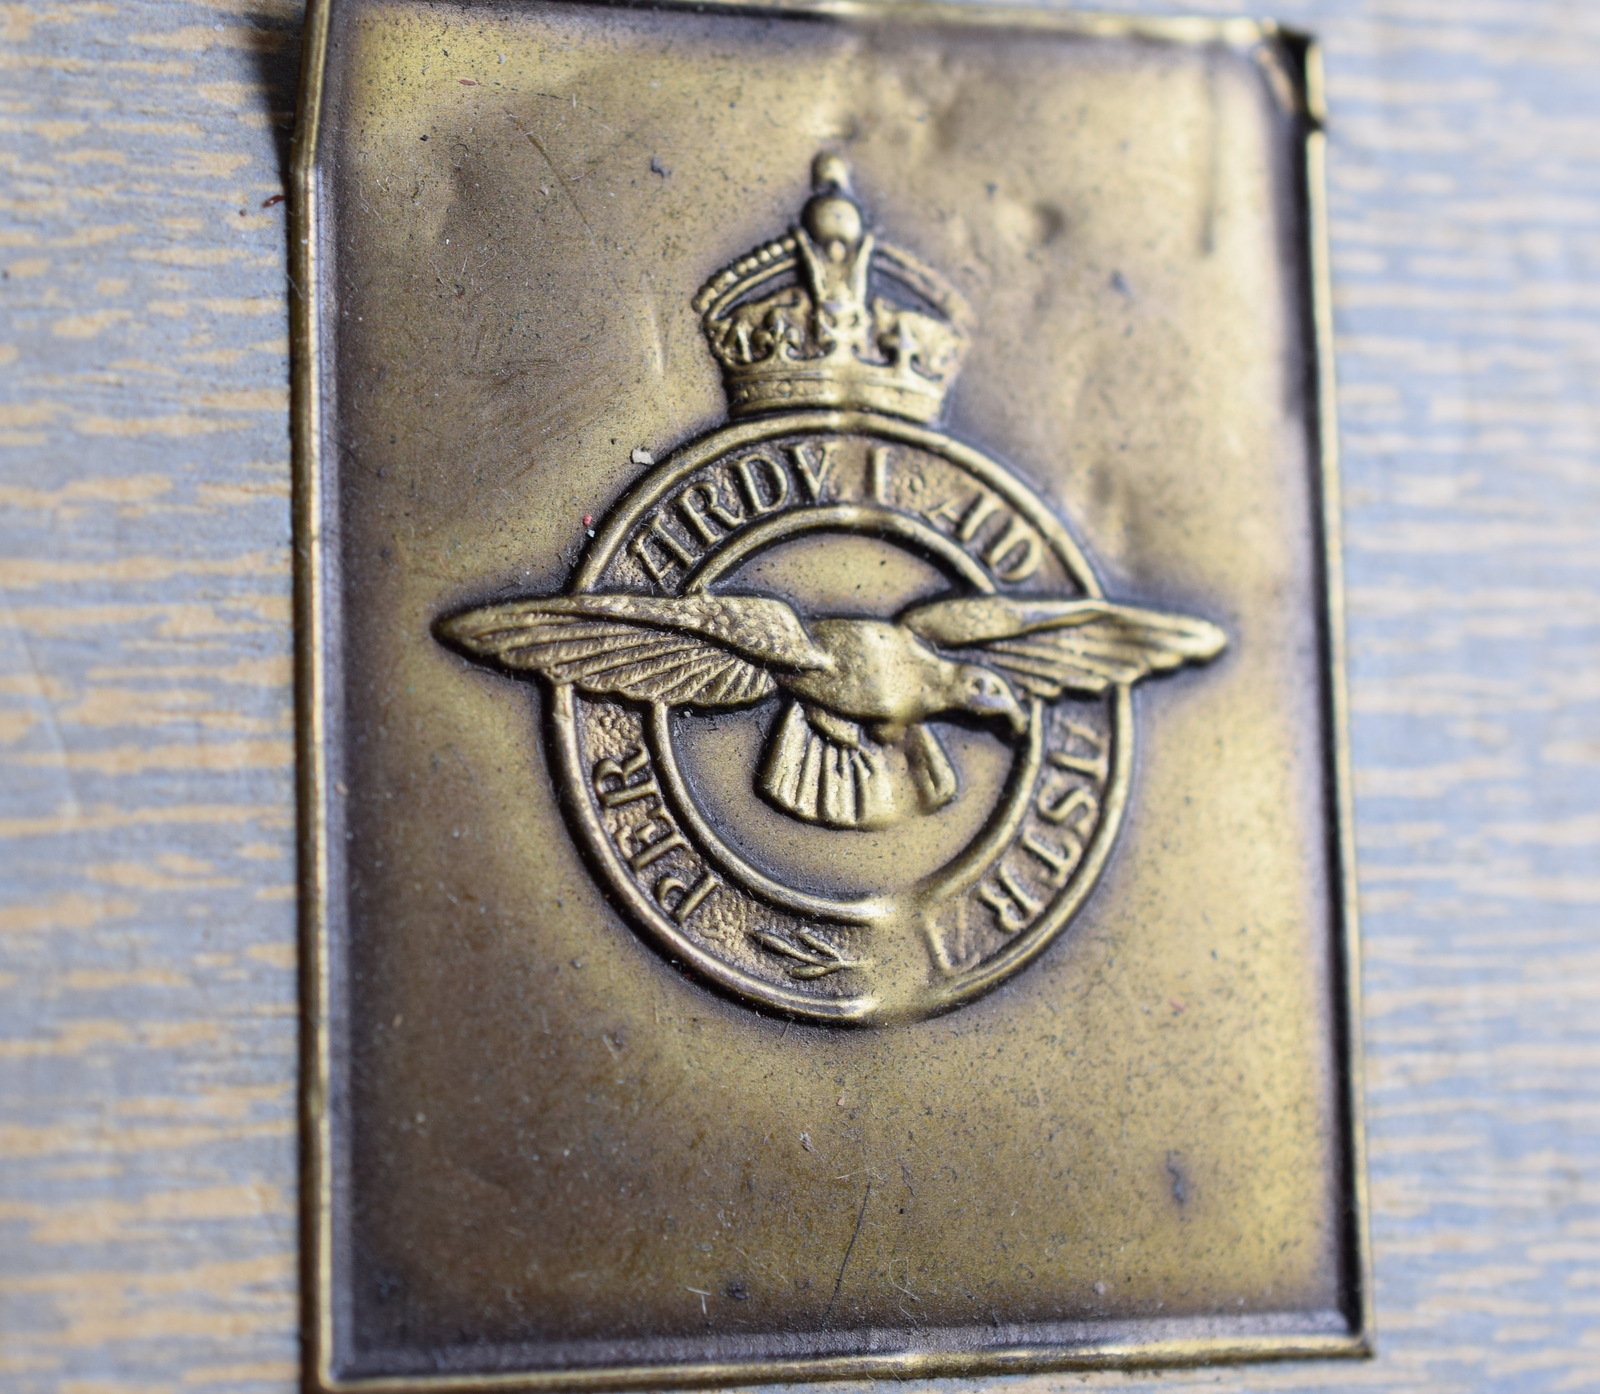 WW2 RAF Photo Album And Badges, Medals - Image 9 of 9